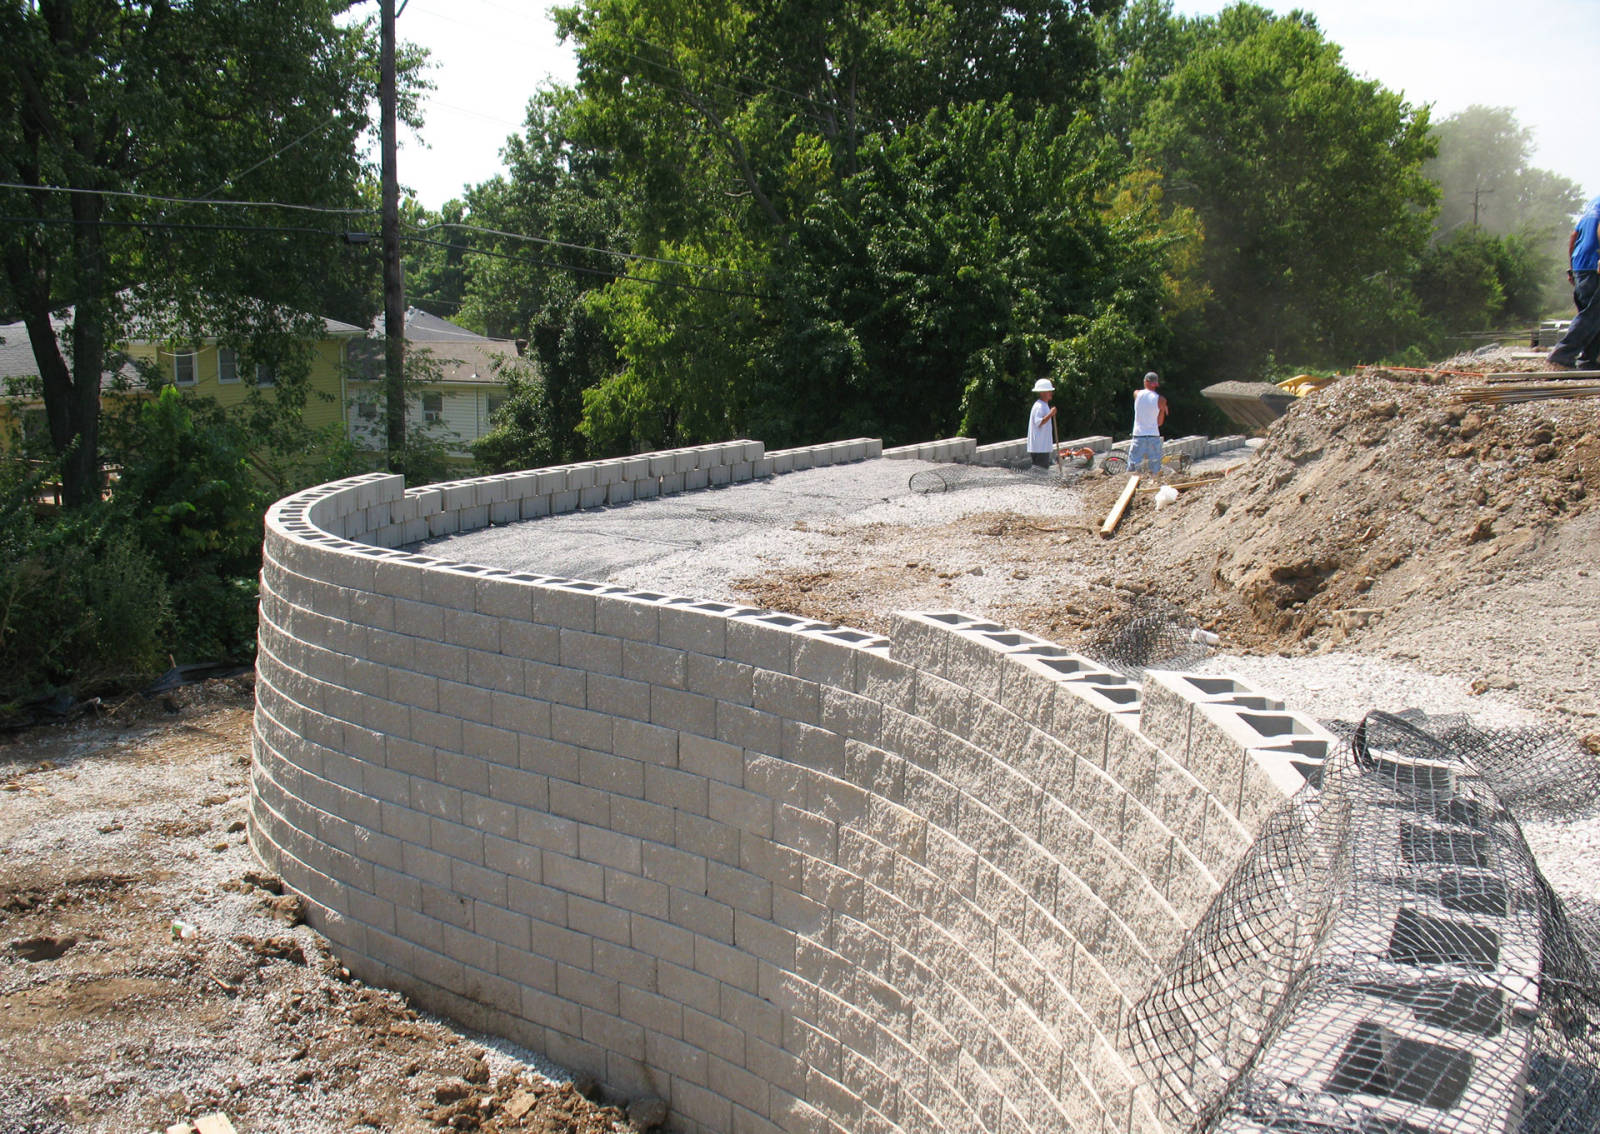 CornerStone retaining wall installation with geogrid